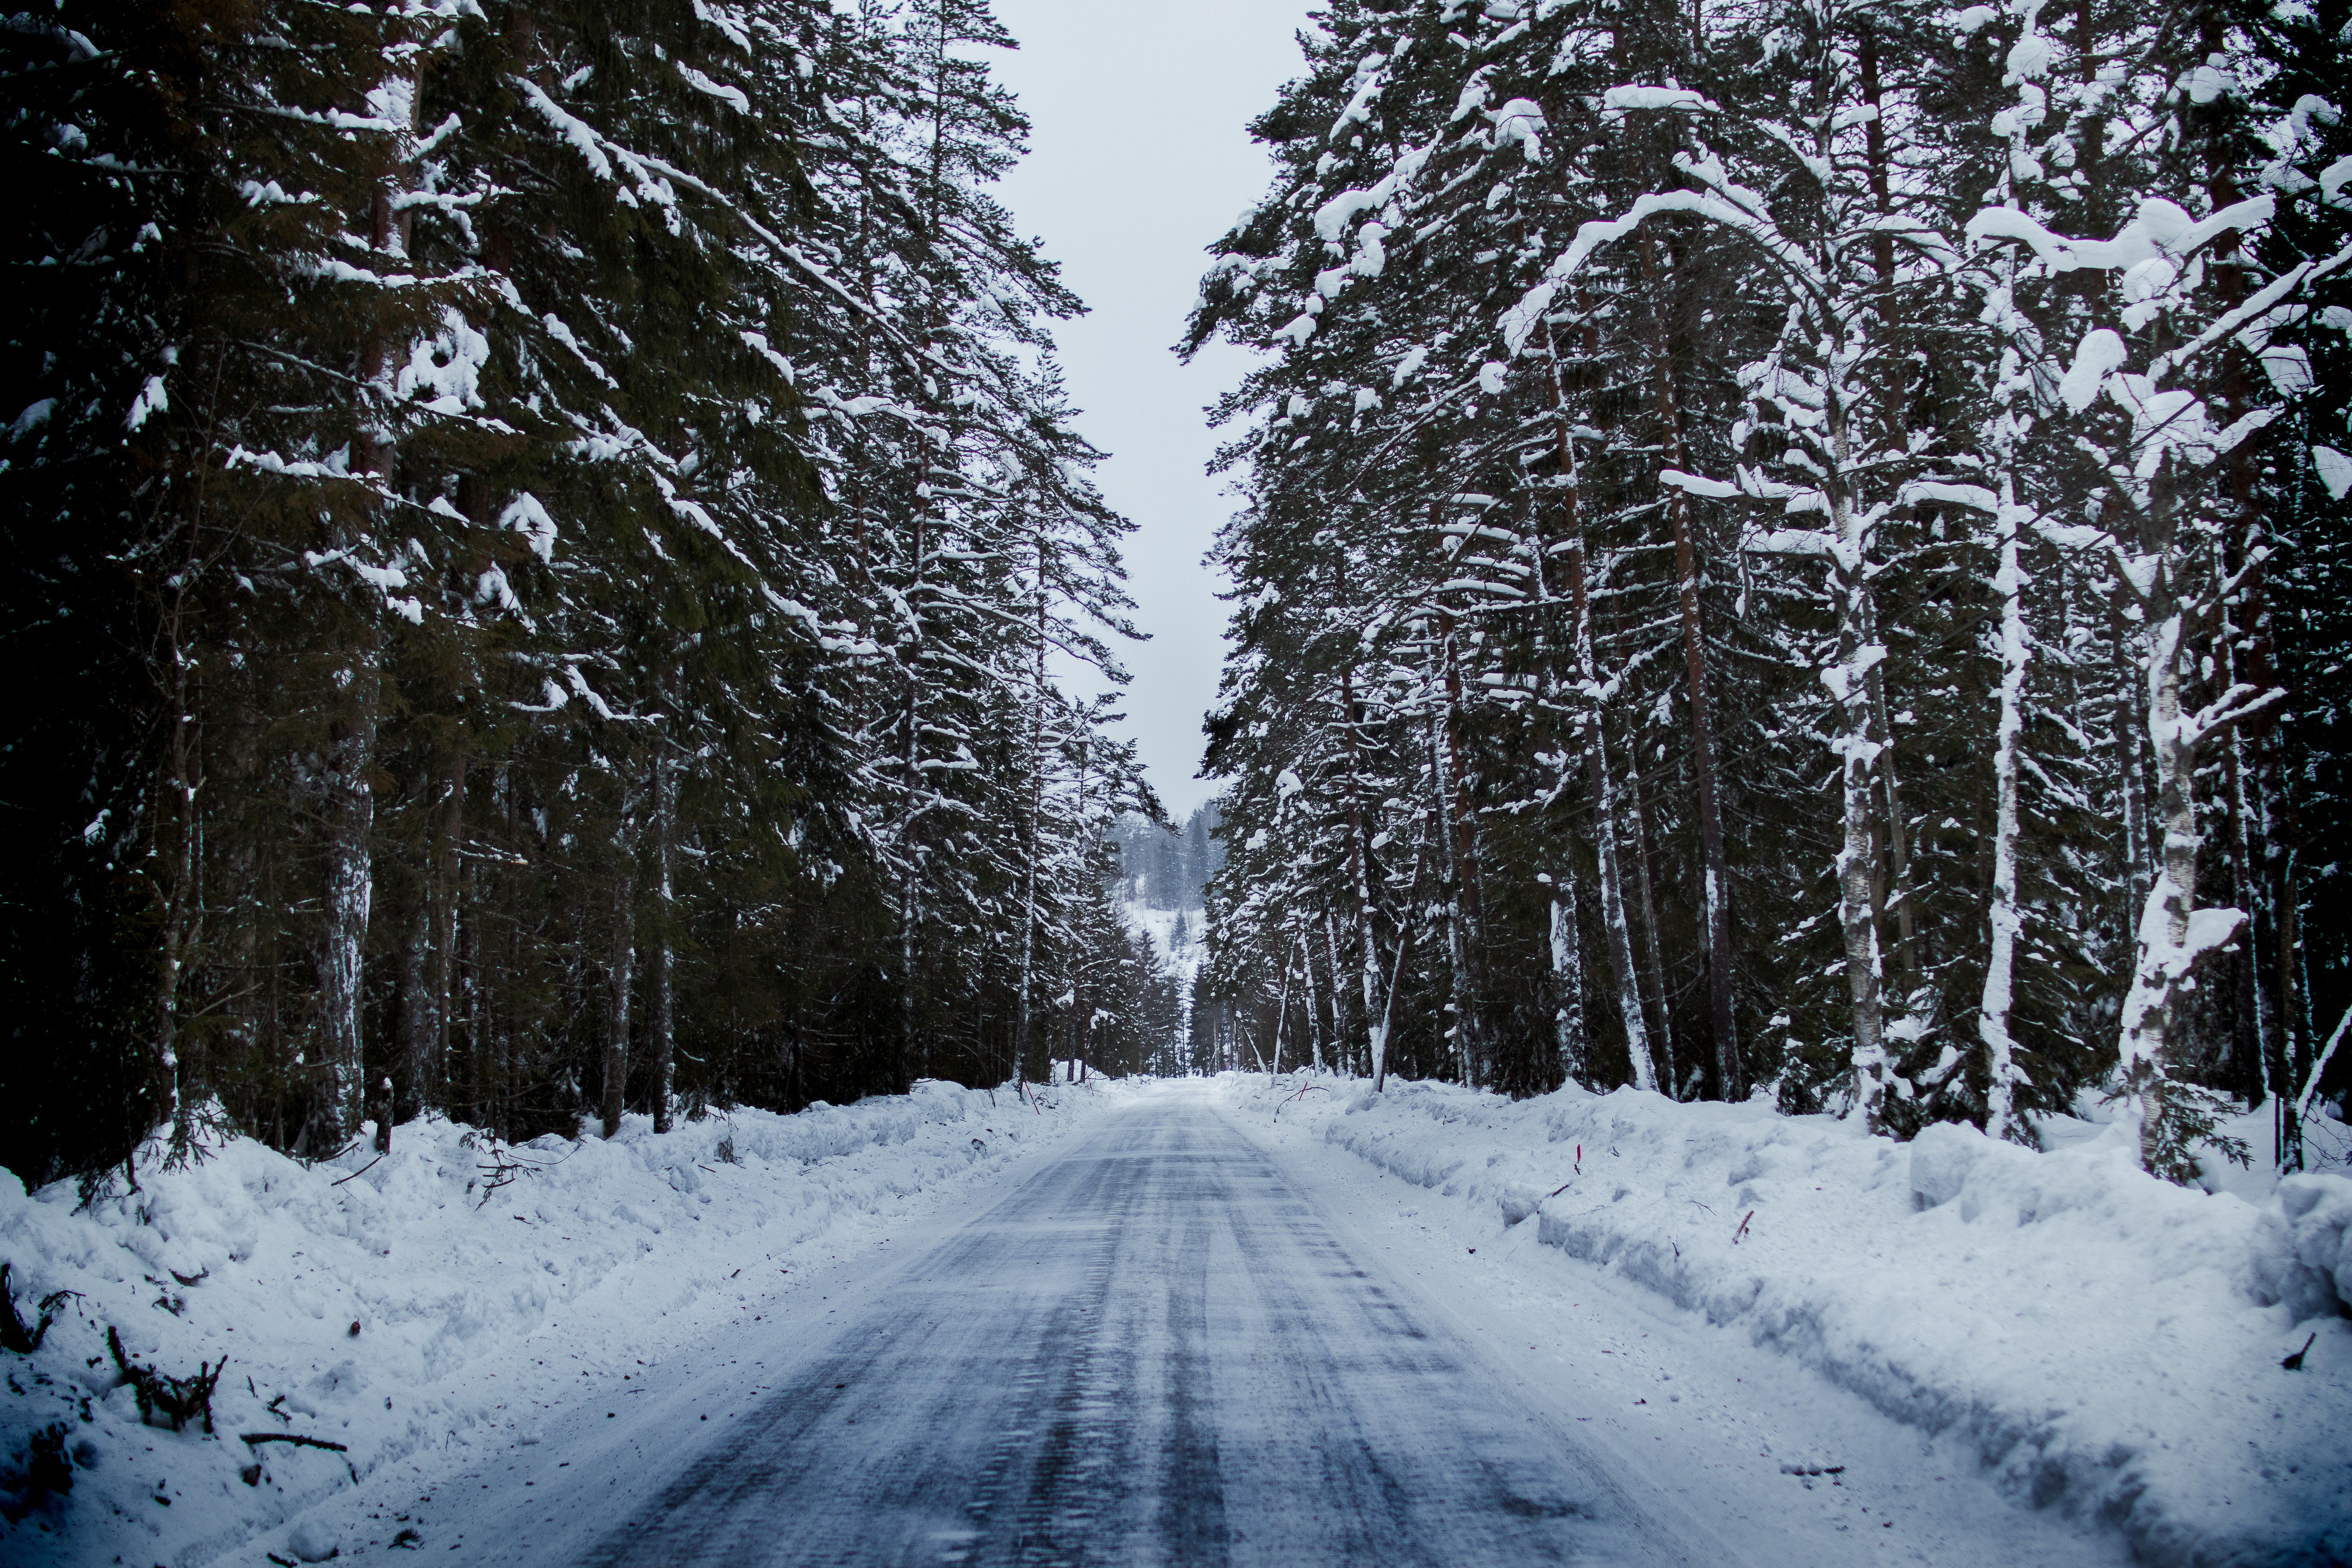 Snowy Road Between Trees, Branches, Road, Winter landscape, Winter, HQ Photo